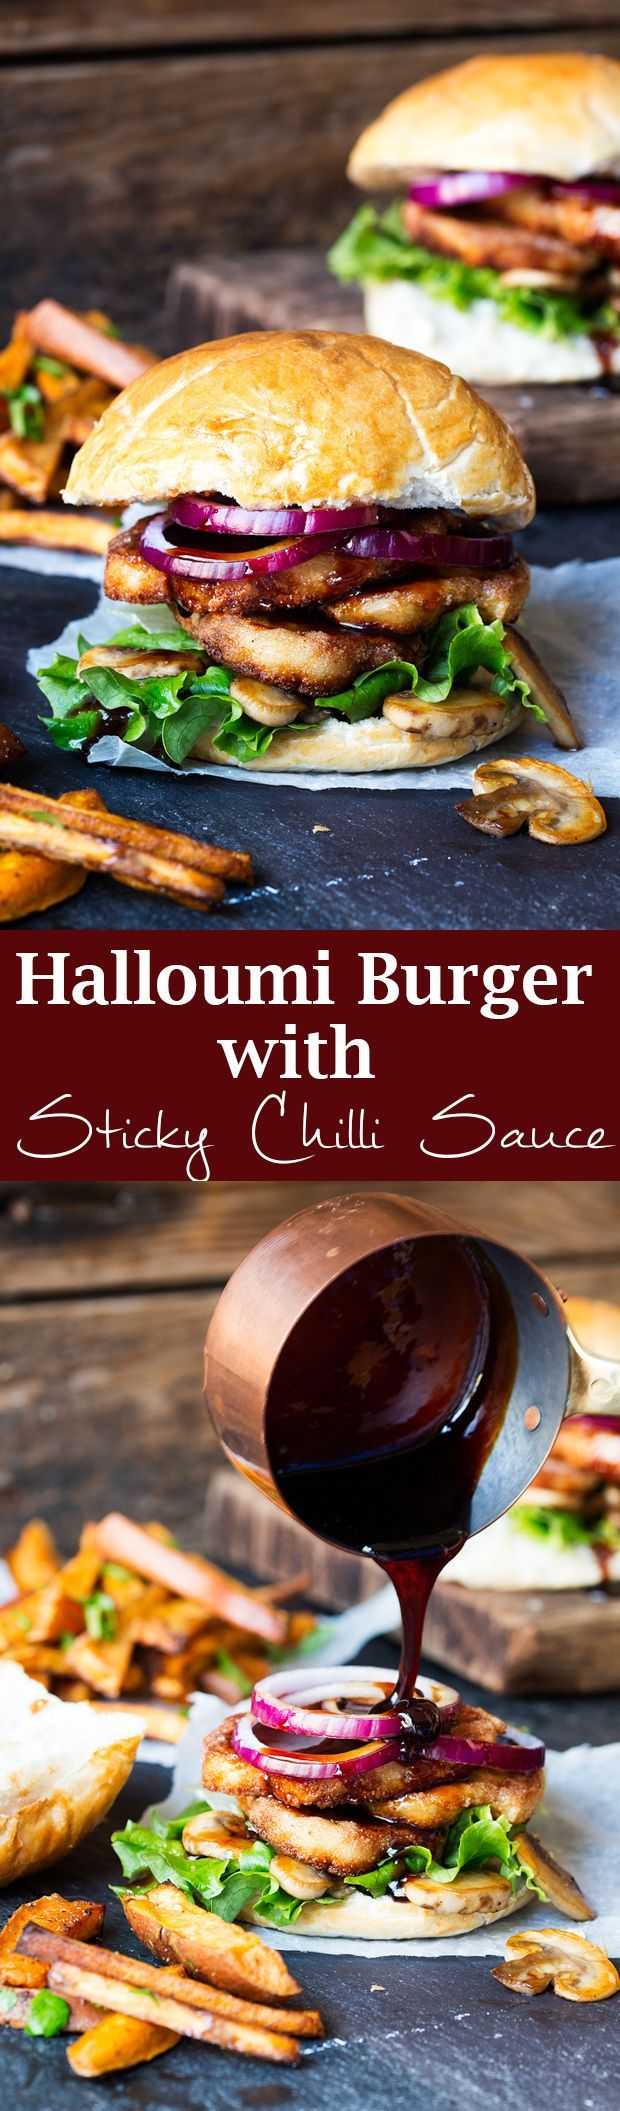 burger with sticky chilli drizzle. A speedy and delicious dinner!